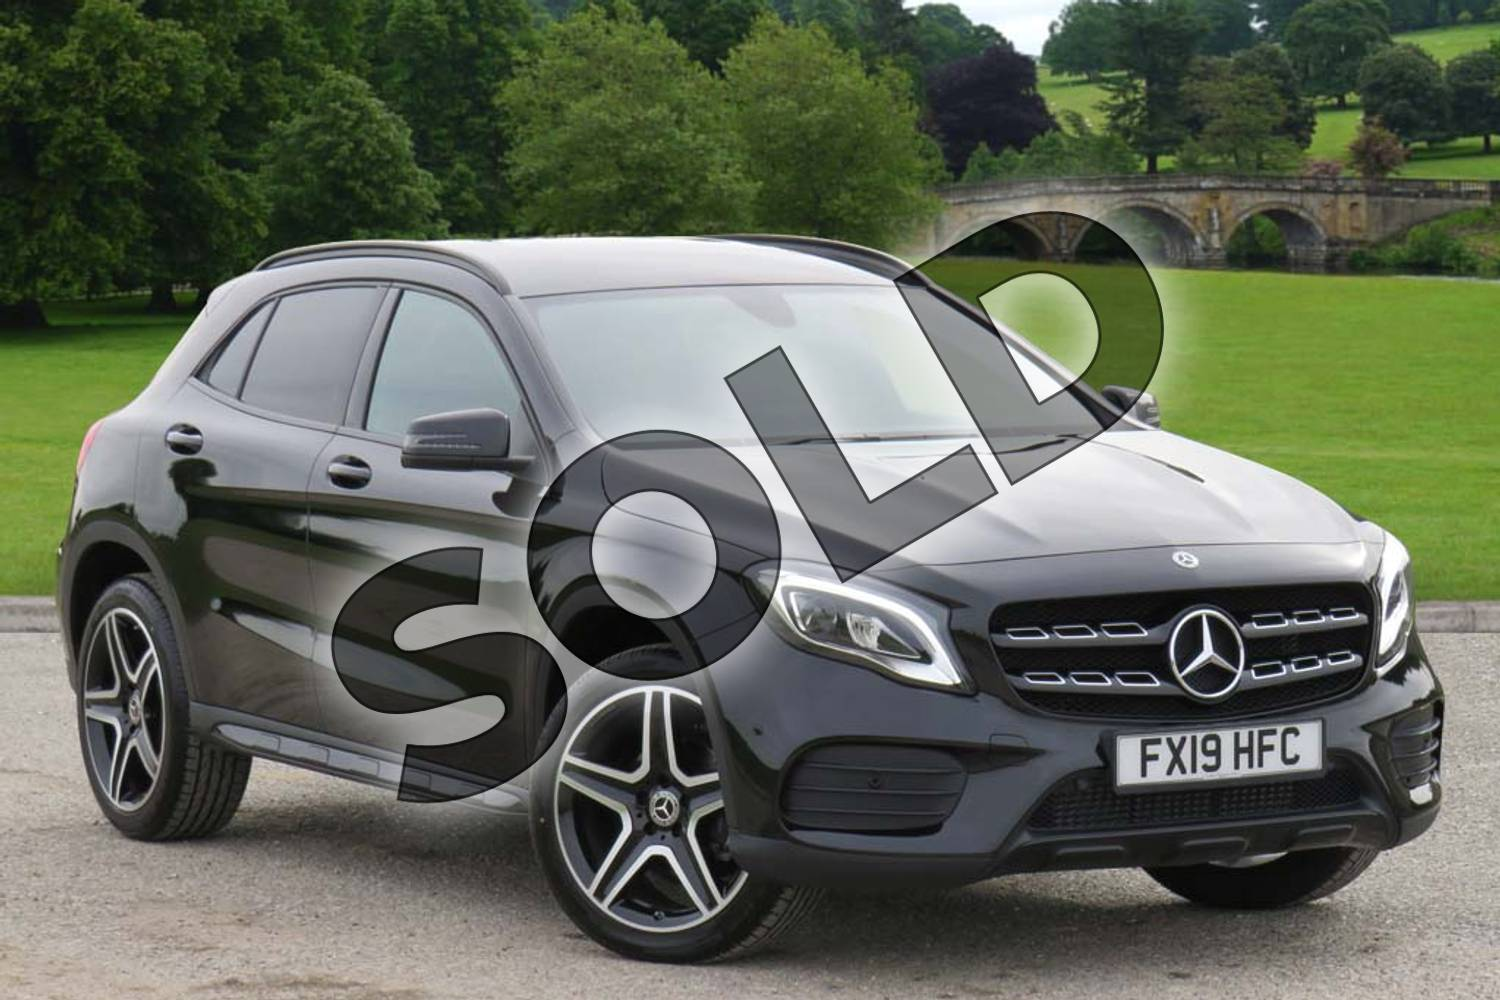 2019 Mercedes-Benz GLA Class Hatchback GLA 200 AMG Line Edition 5dr Auto in Cosmos Black Metallic at Mercedes-Benz of Boston